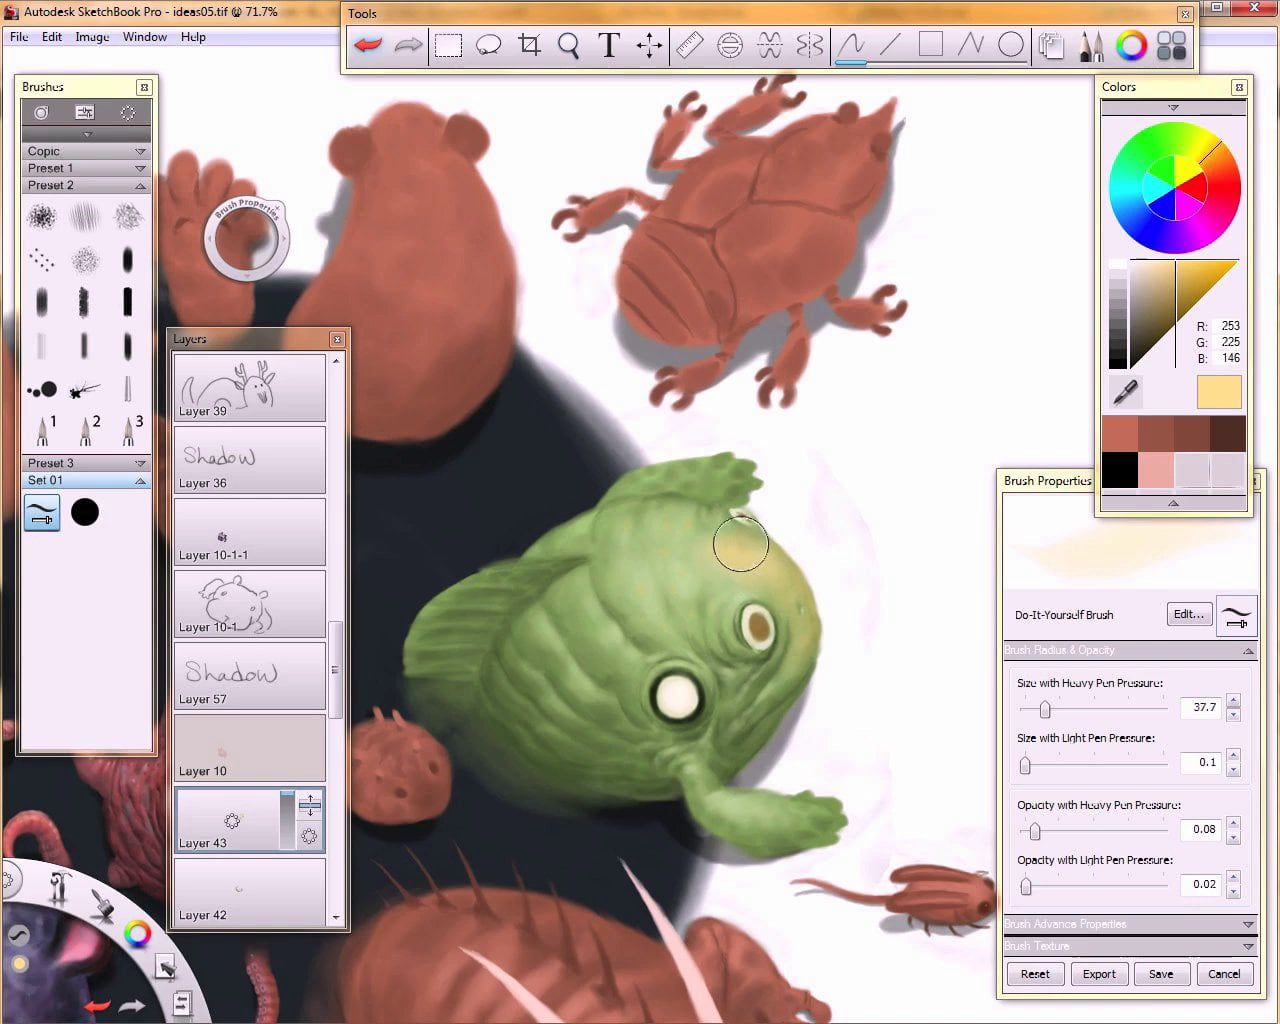 How to create grid in sketchbook pro - Painting In Sketchbook Pro With Bobby Chiu